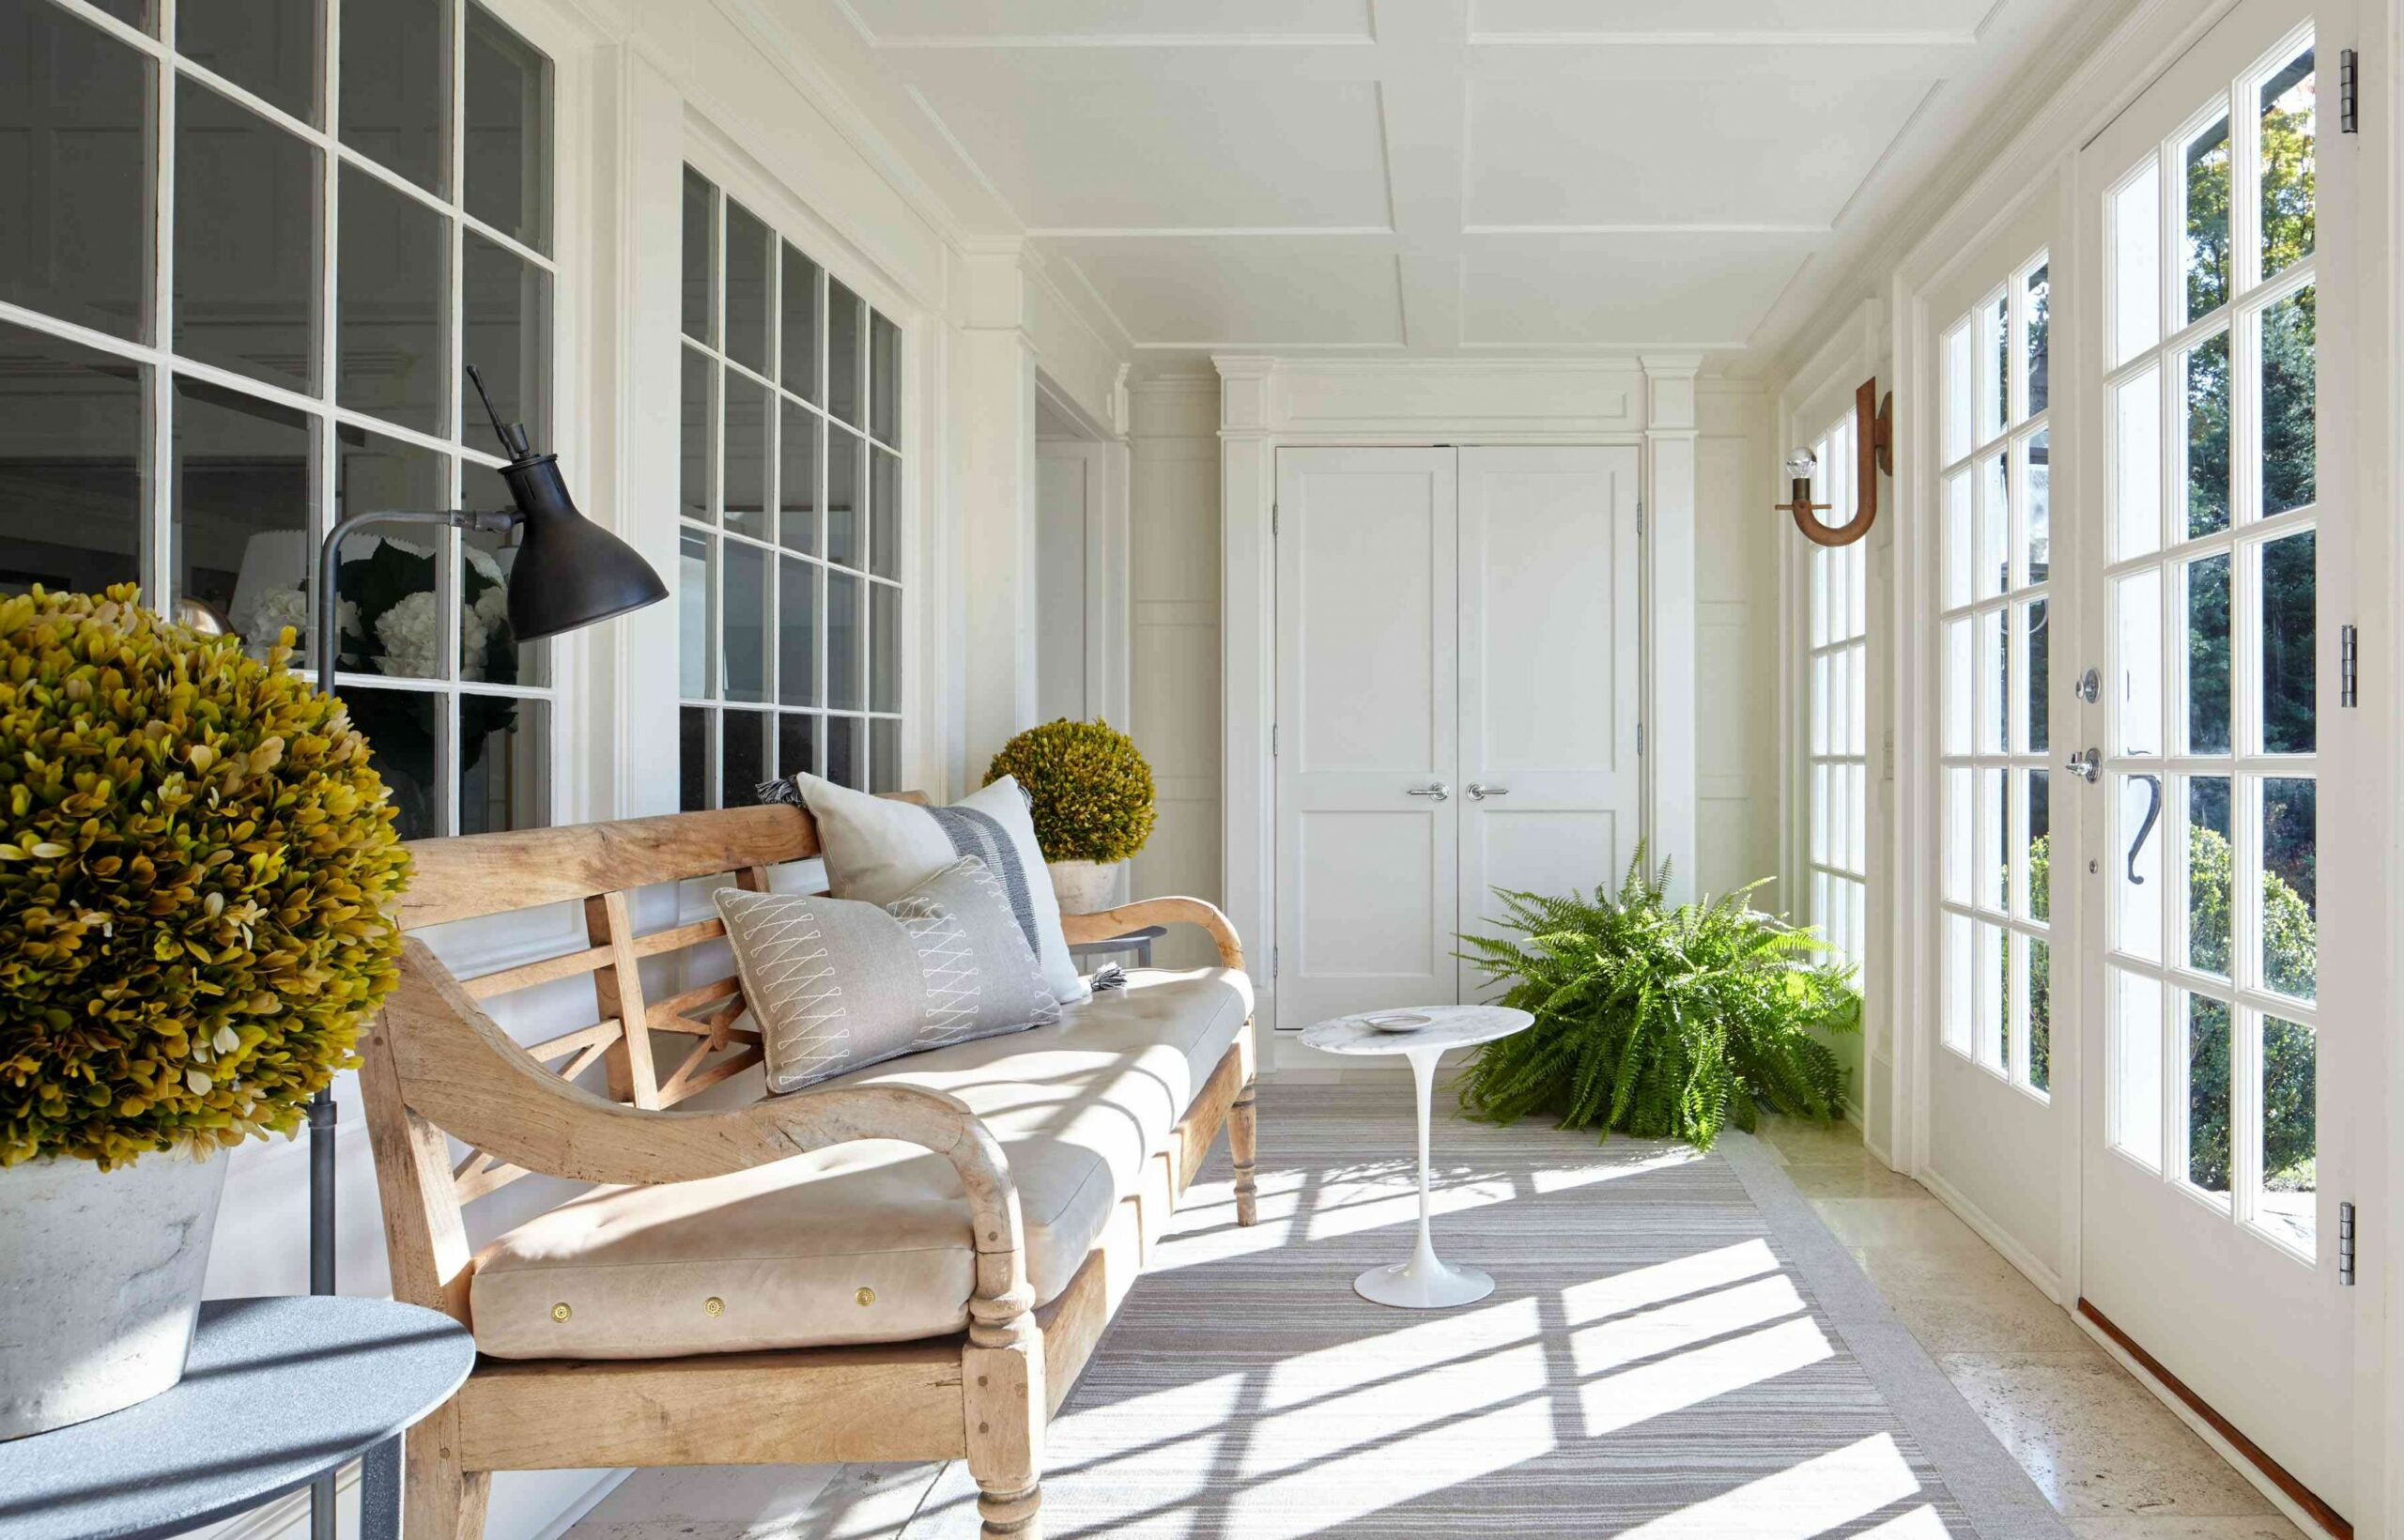 12 Brilliant Sunrooms For Bringing The Outdoors In - long sunroom ideas